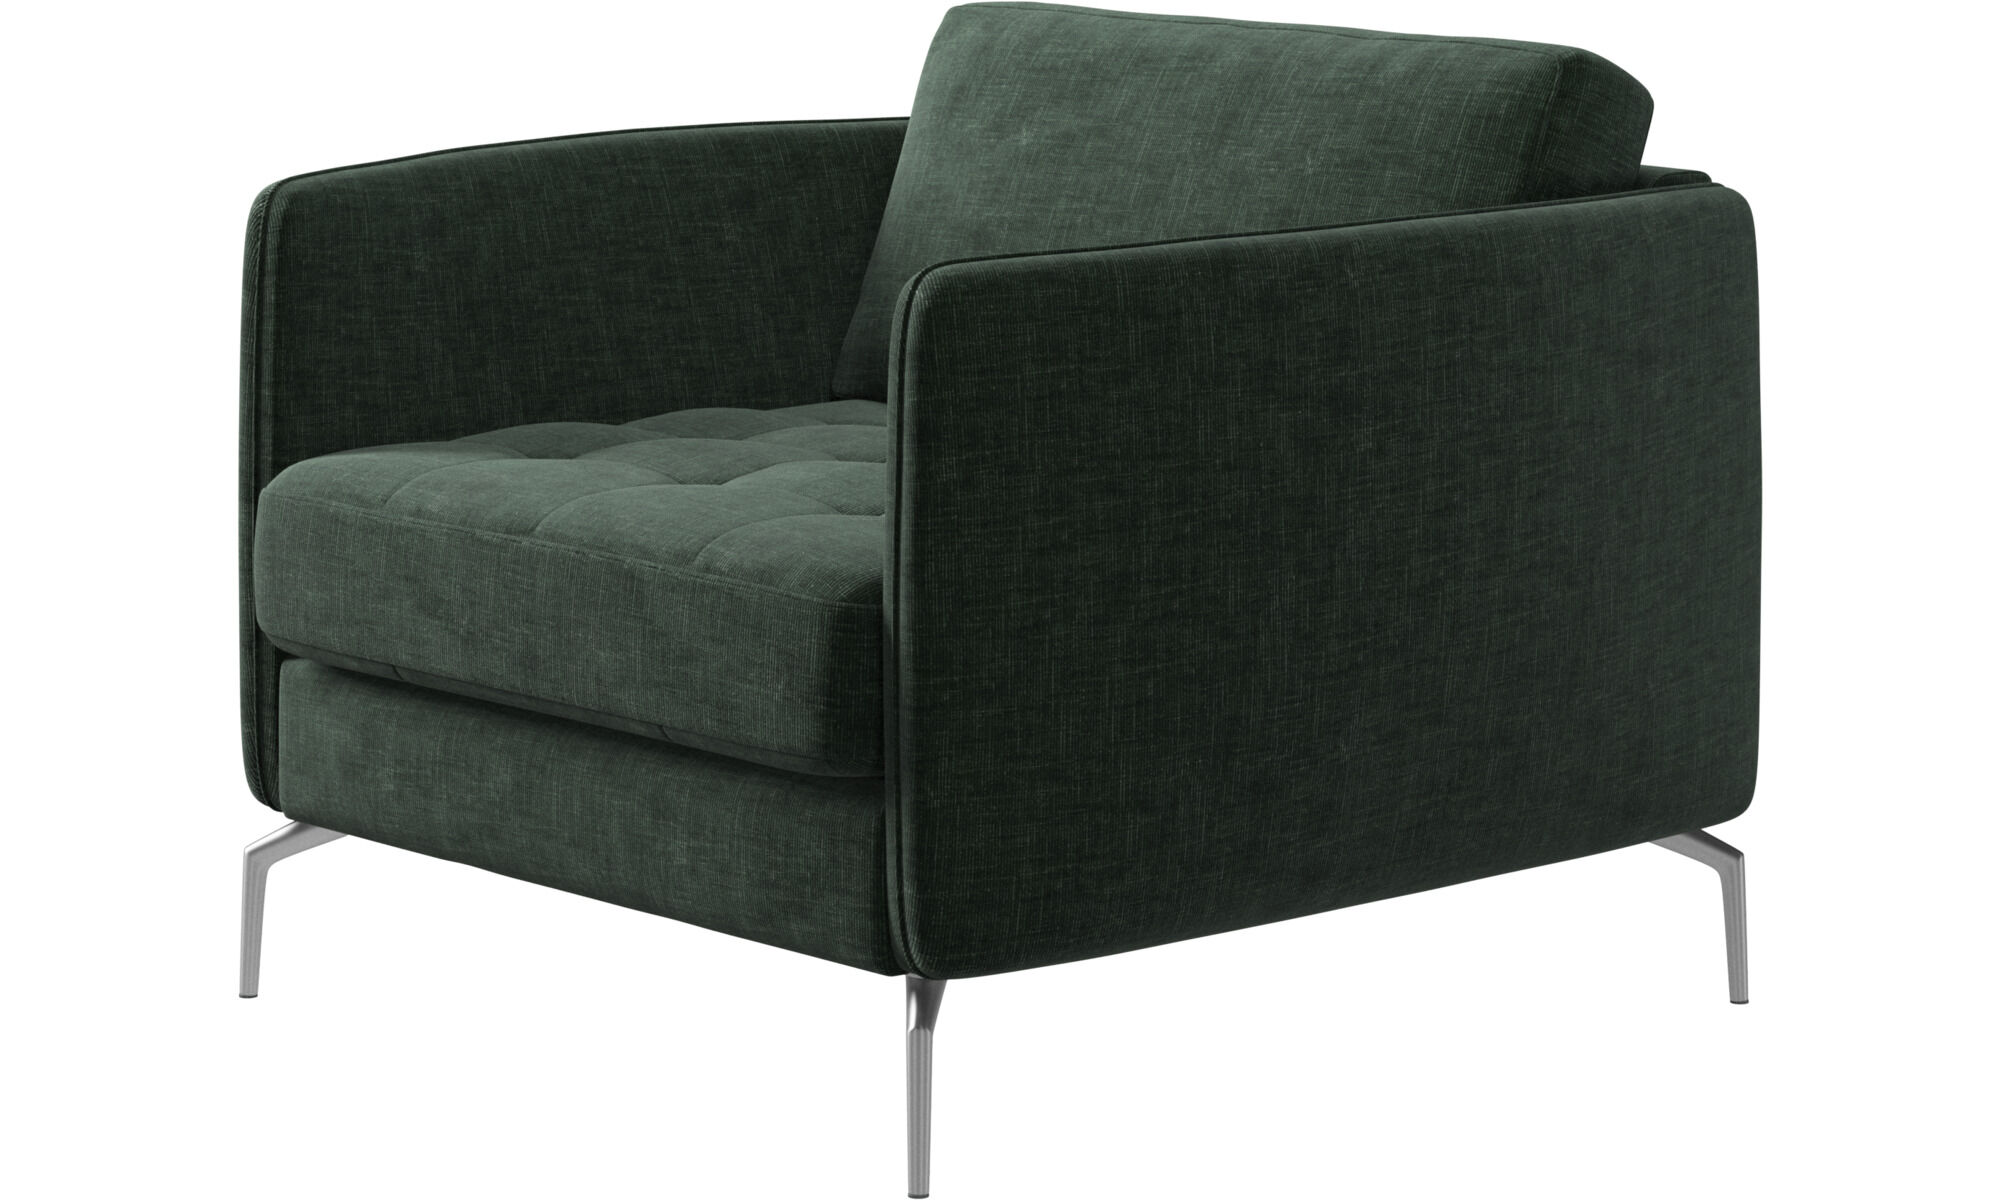 Armchairs   Osaka Chair, Tufted Seat   Green   Fabric